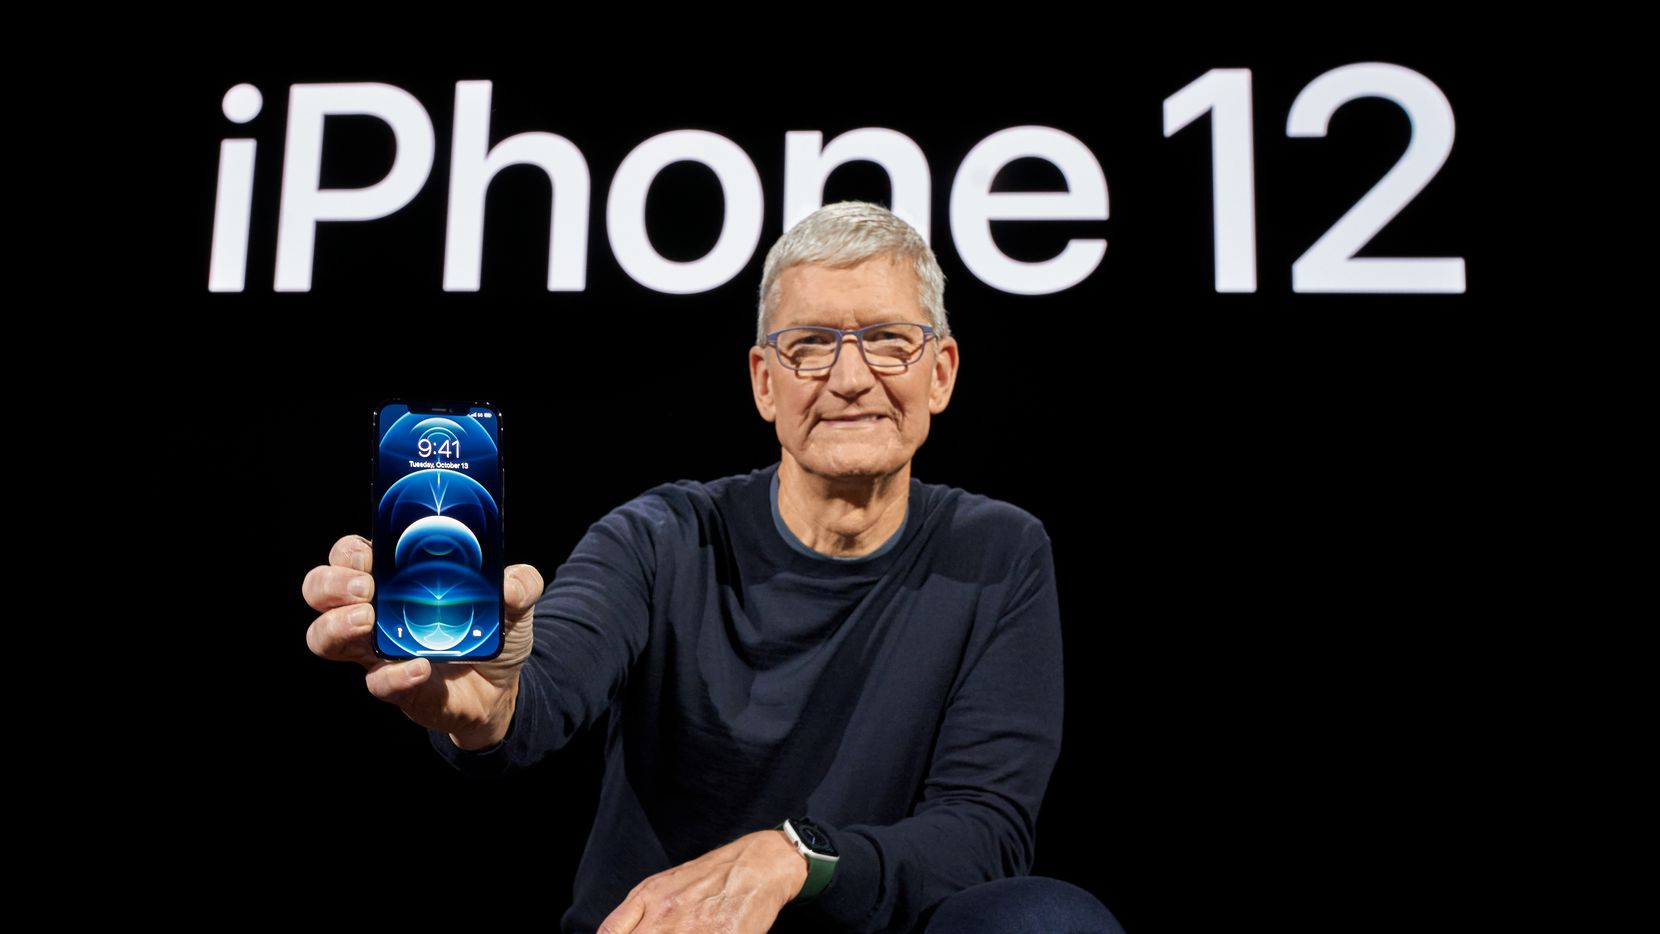 Apple CEO Tim Cook showcased the all-new iPhone 12 Pro at Apple Park in Cupertino, Calif., on Oct. 13.